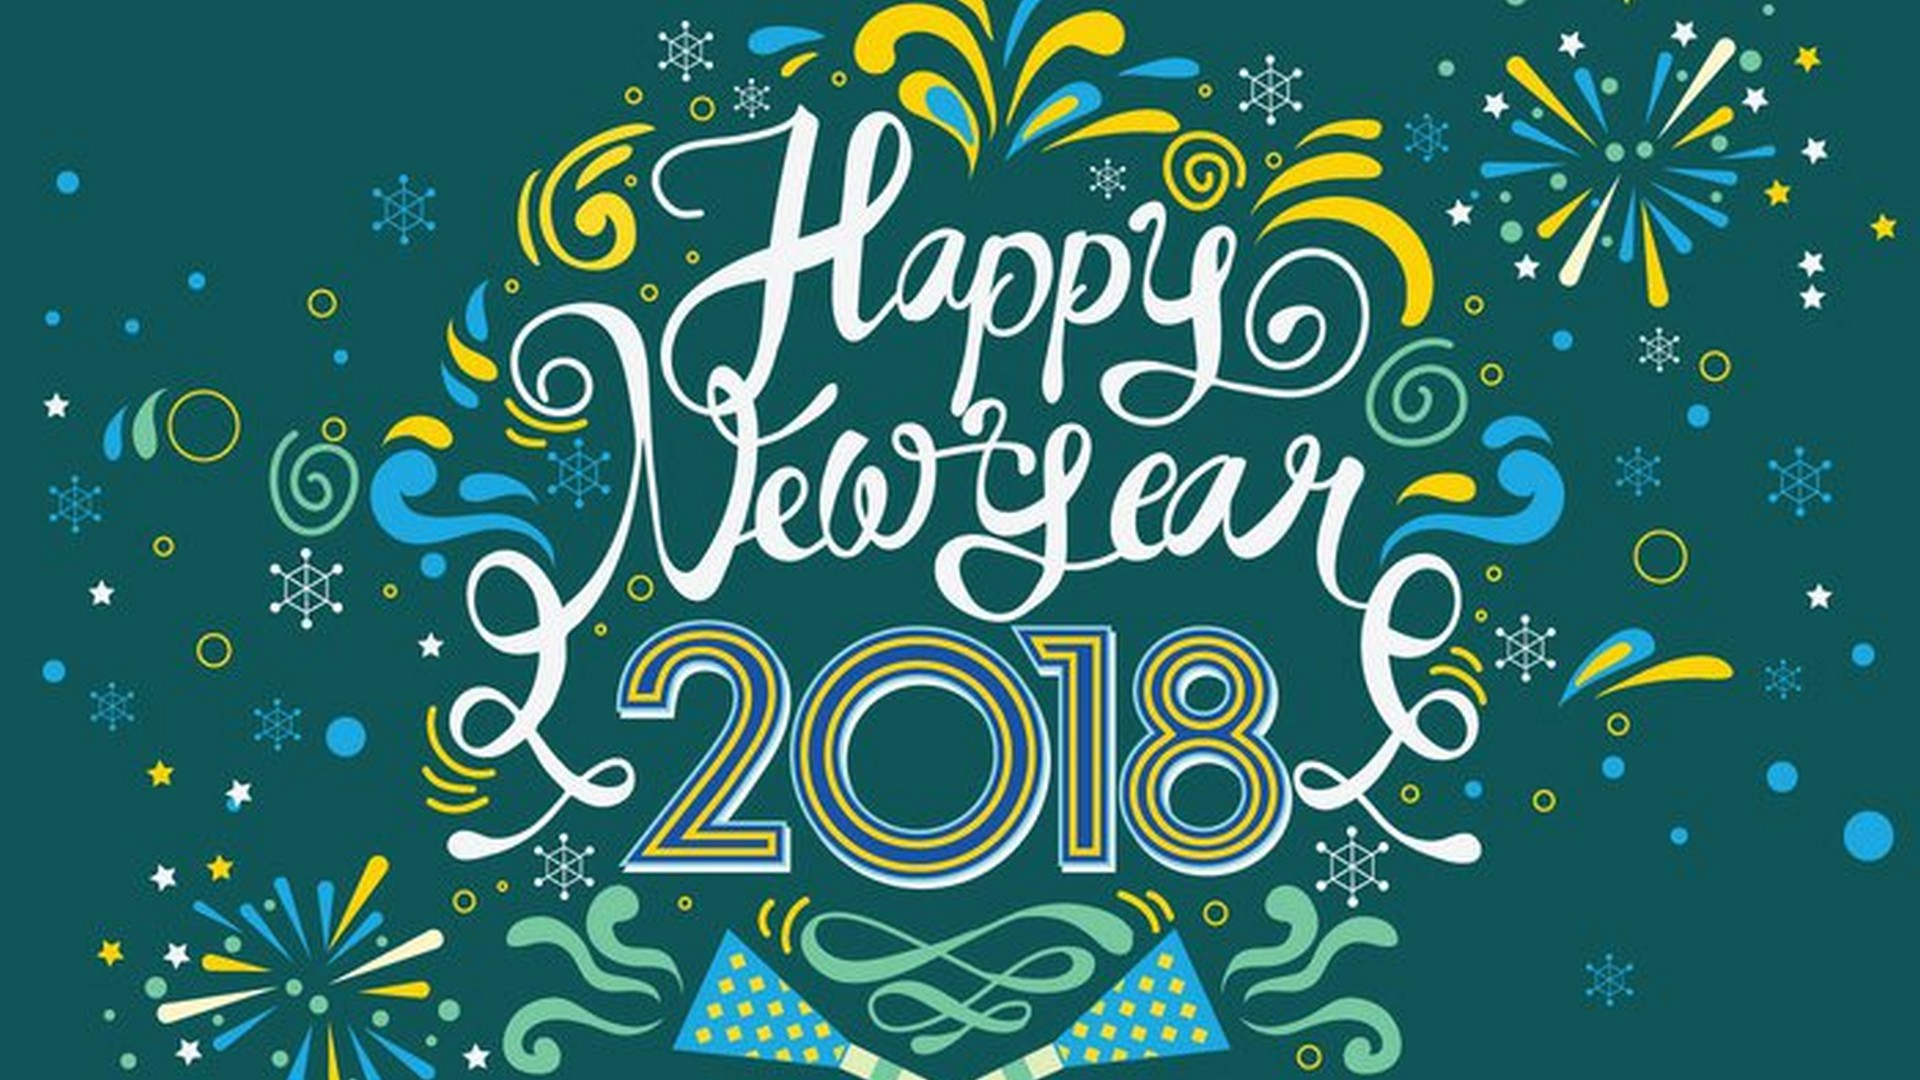 30 Happy New Year 2018 HD Wallpapers to Beautify Your Desktop